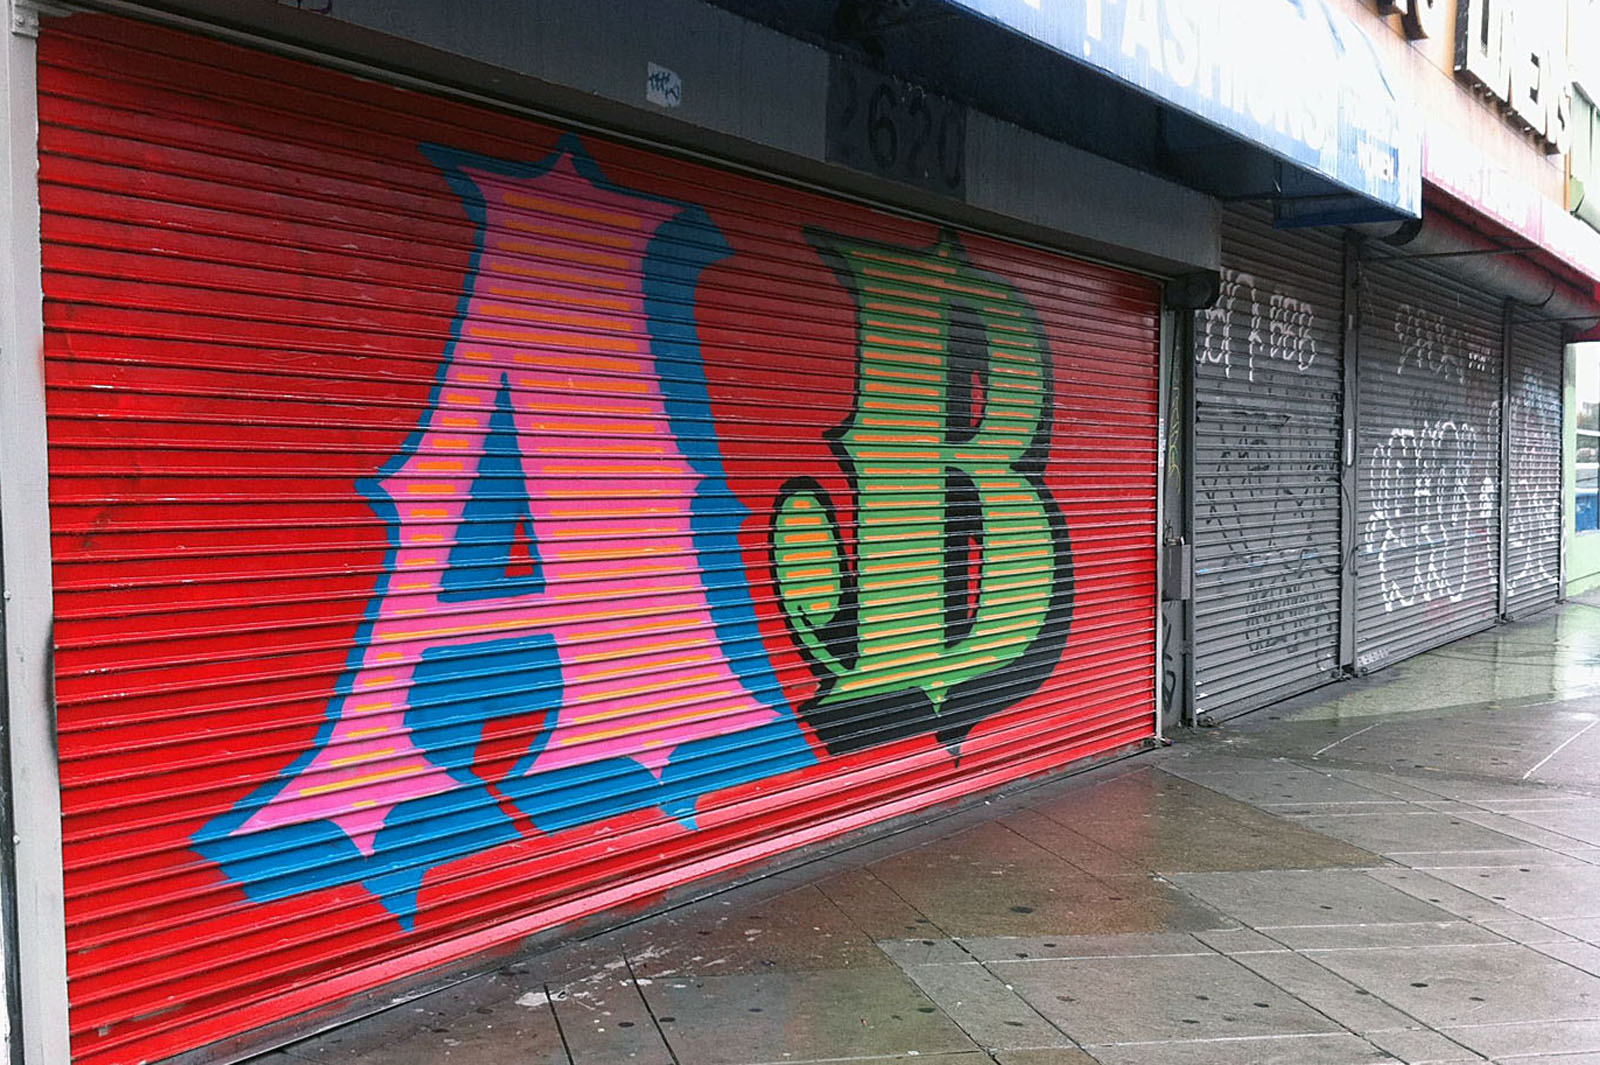 British Street Artist Letters the Mission